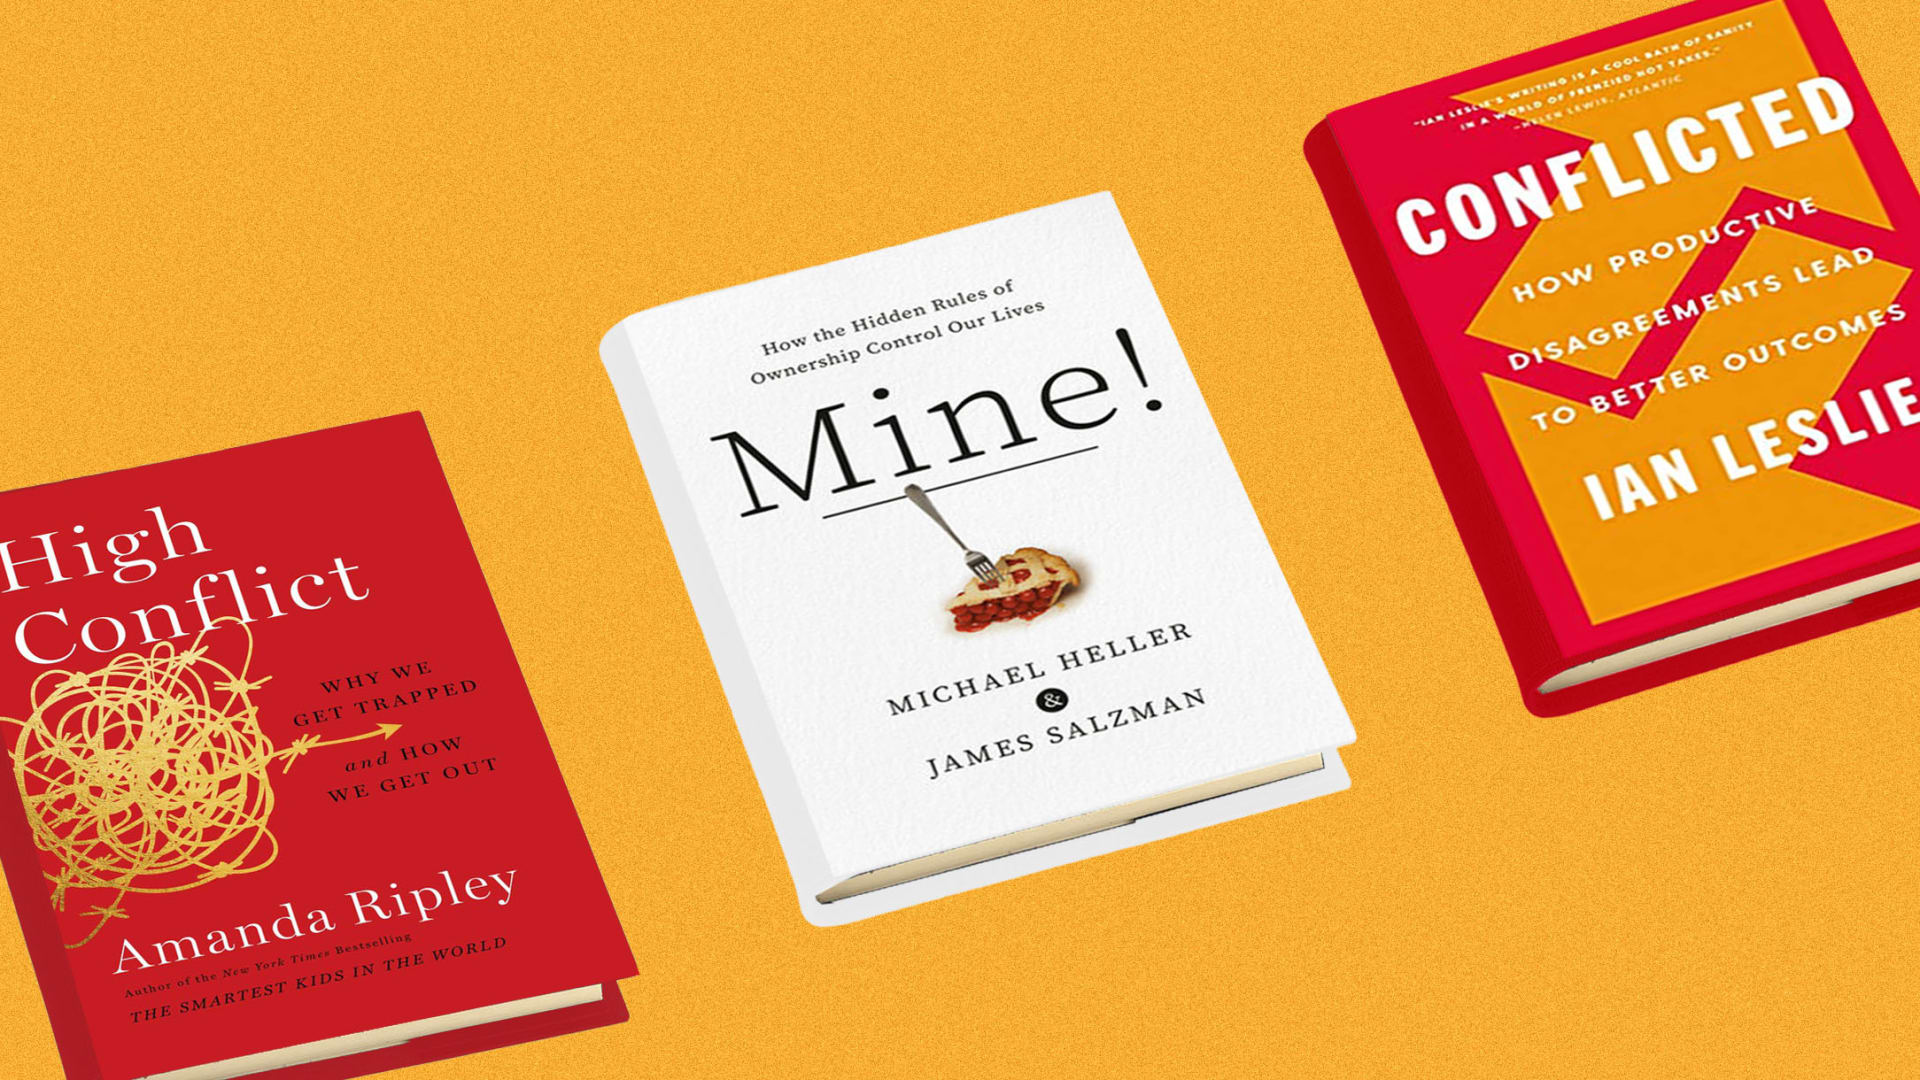 12 New Books That Will Make You Smarter, According to Adam Grant